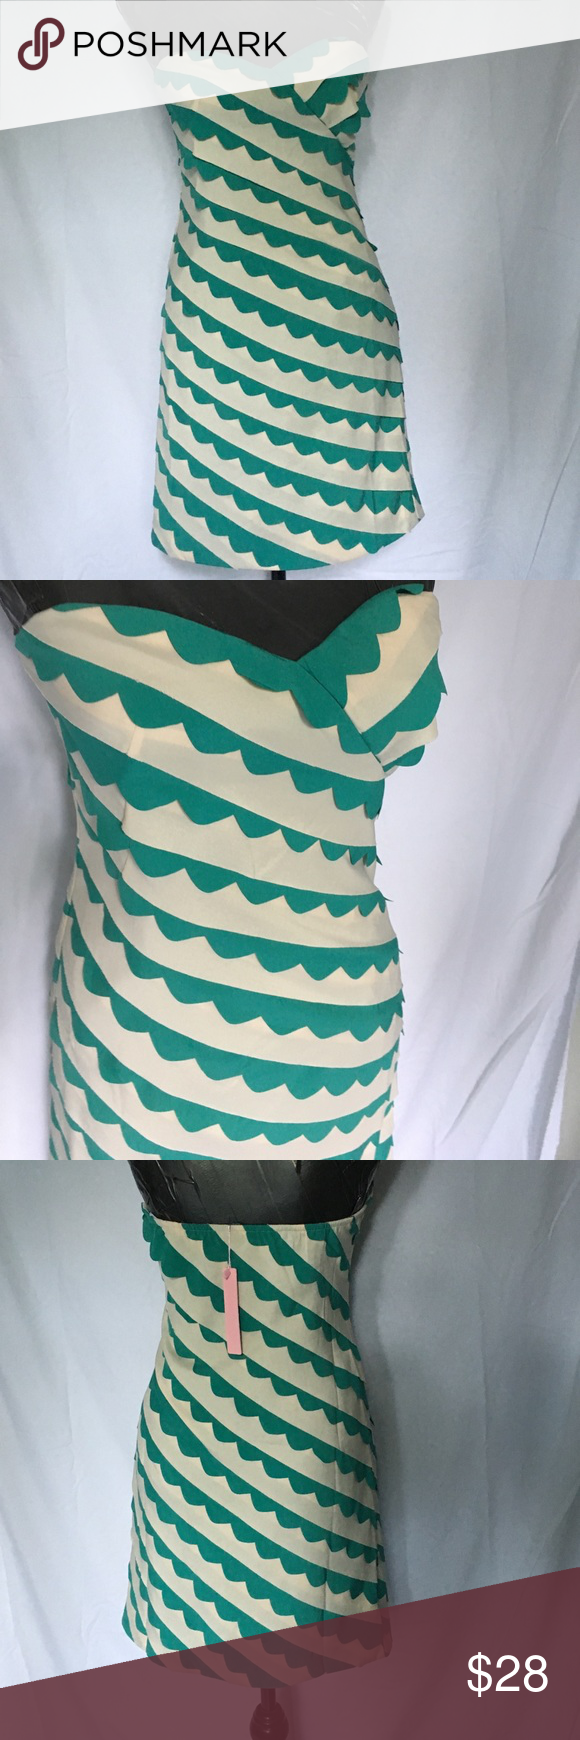 MINUET DRESS Teal green scallops highlighted by the soft cream stripe, sleeveless, side zipper, fully lined, never worn, NWTS Minuet Dresses